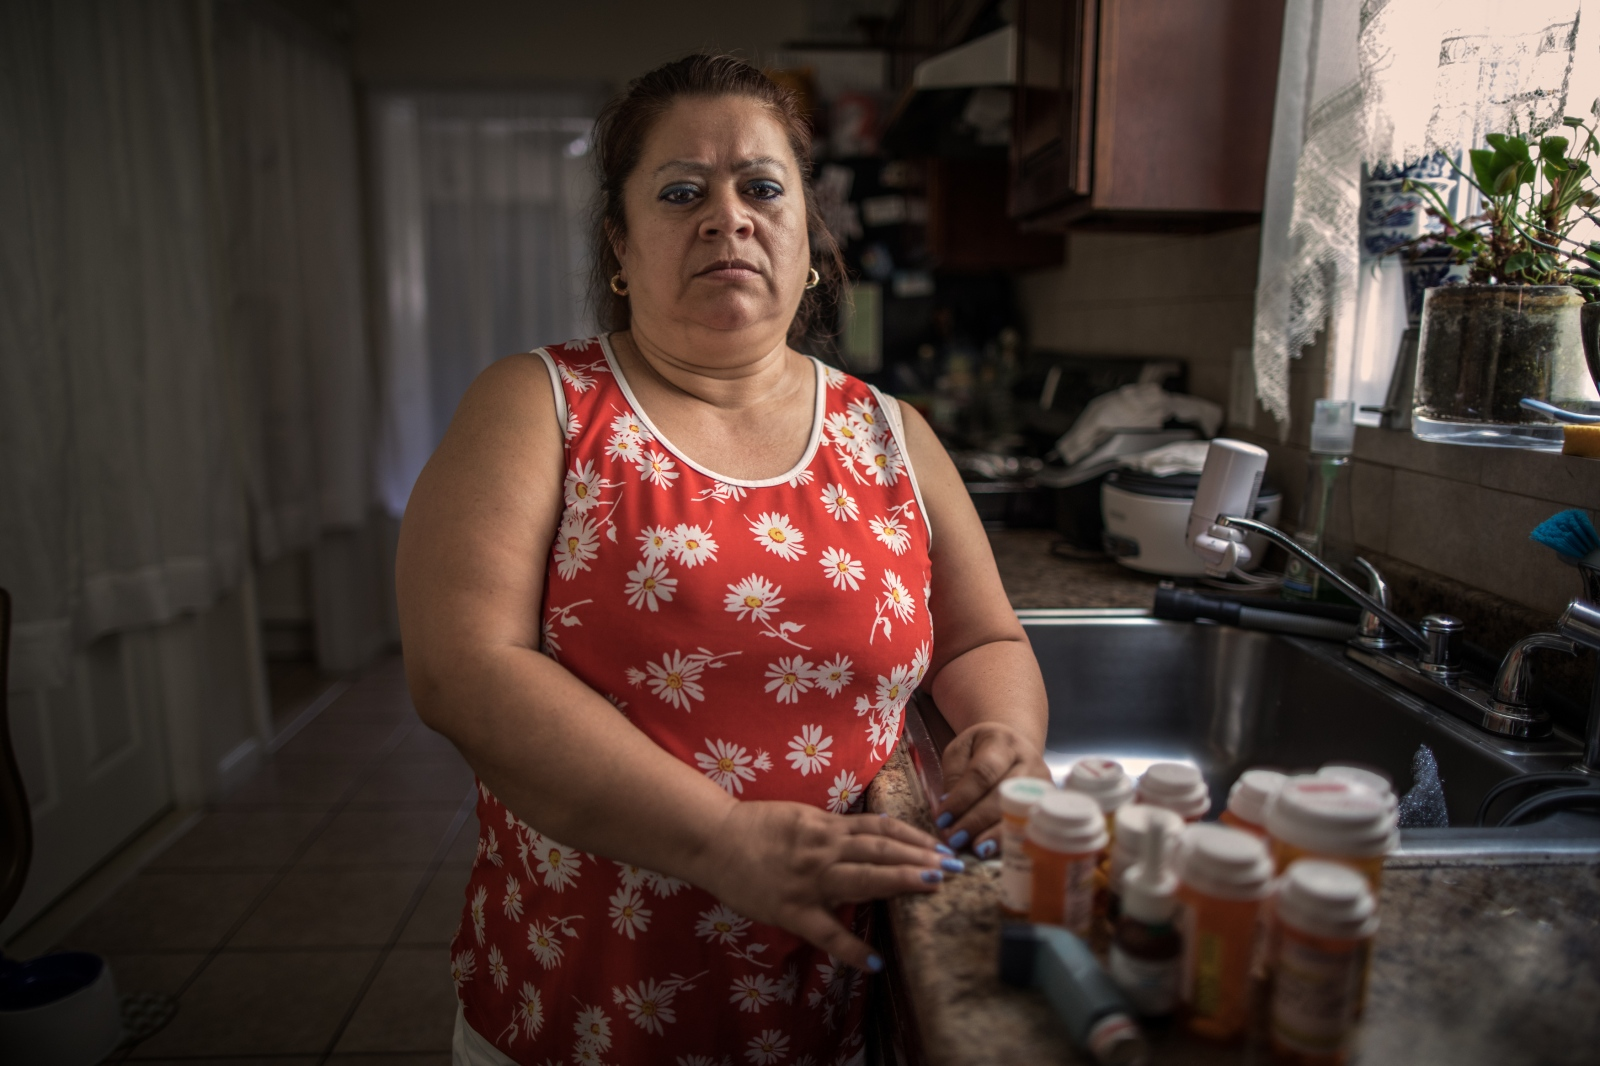 "Elisabeth Pelaez, 50, Colombian. She cleaned debris for a month and sleeps with a breathing machine. ""The lawyers tell us that we have to wait for compensation but we have been waiting for many years. I have a partial disability and can no longer work as I did before."""